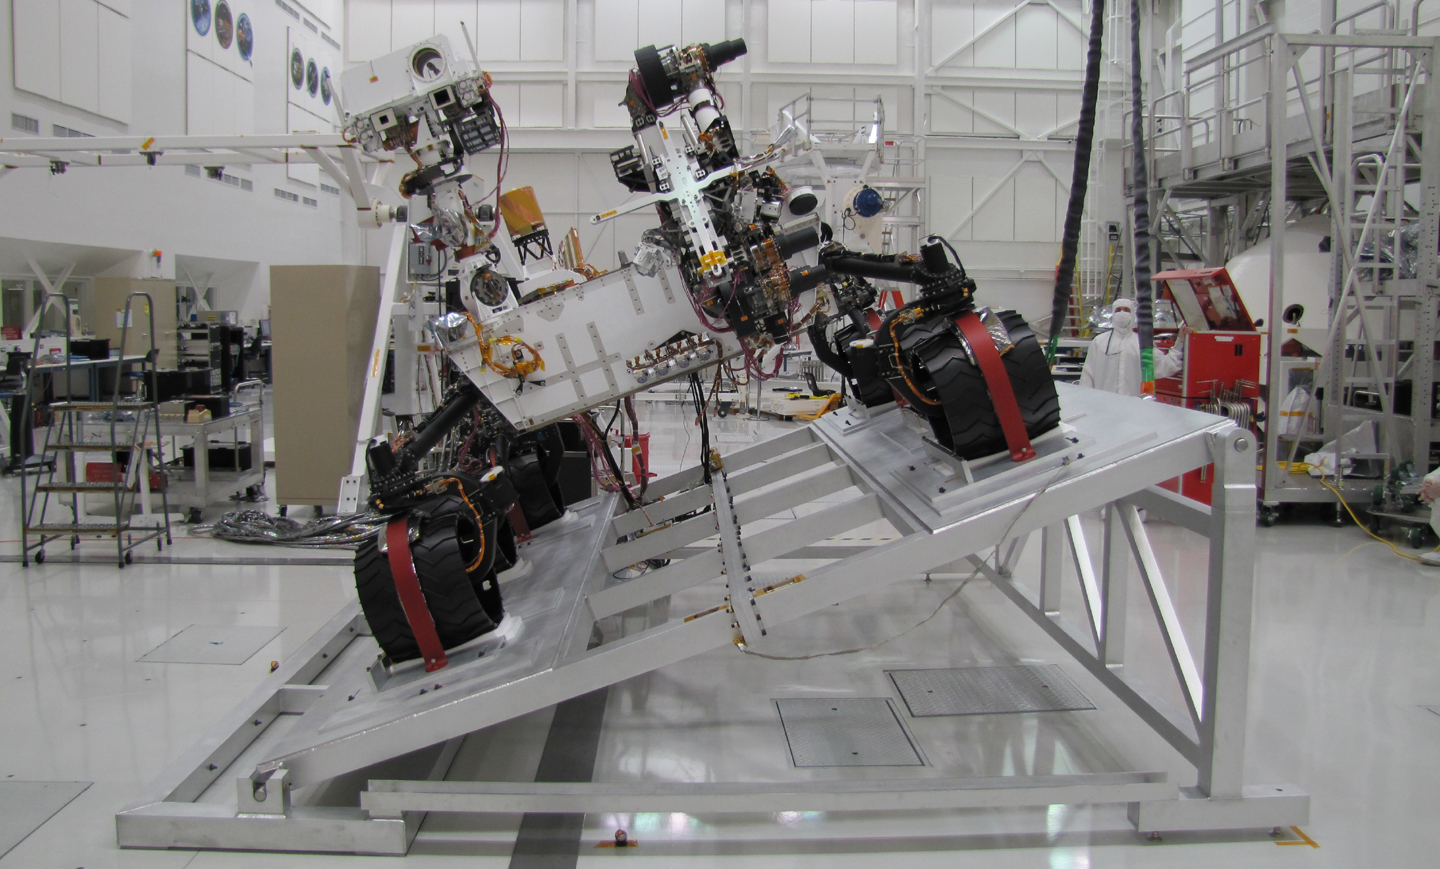 The MSL rover Curiosity on a tilt table in the Spacecraft Assembly Facility at NASA's Jet Propulsion Laboratory.